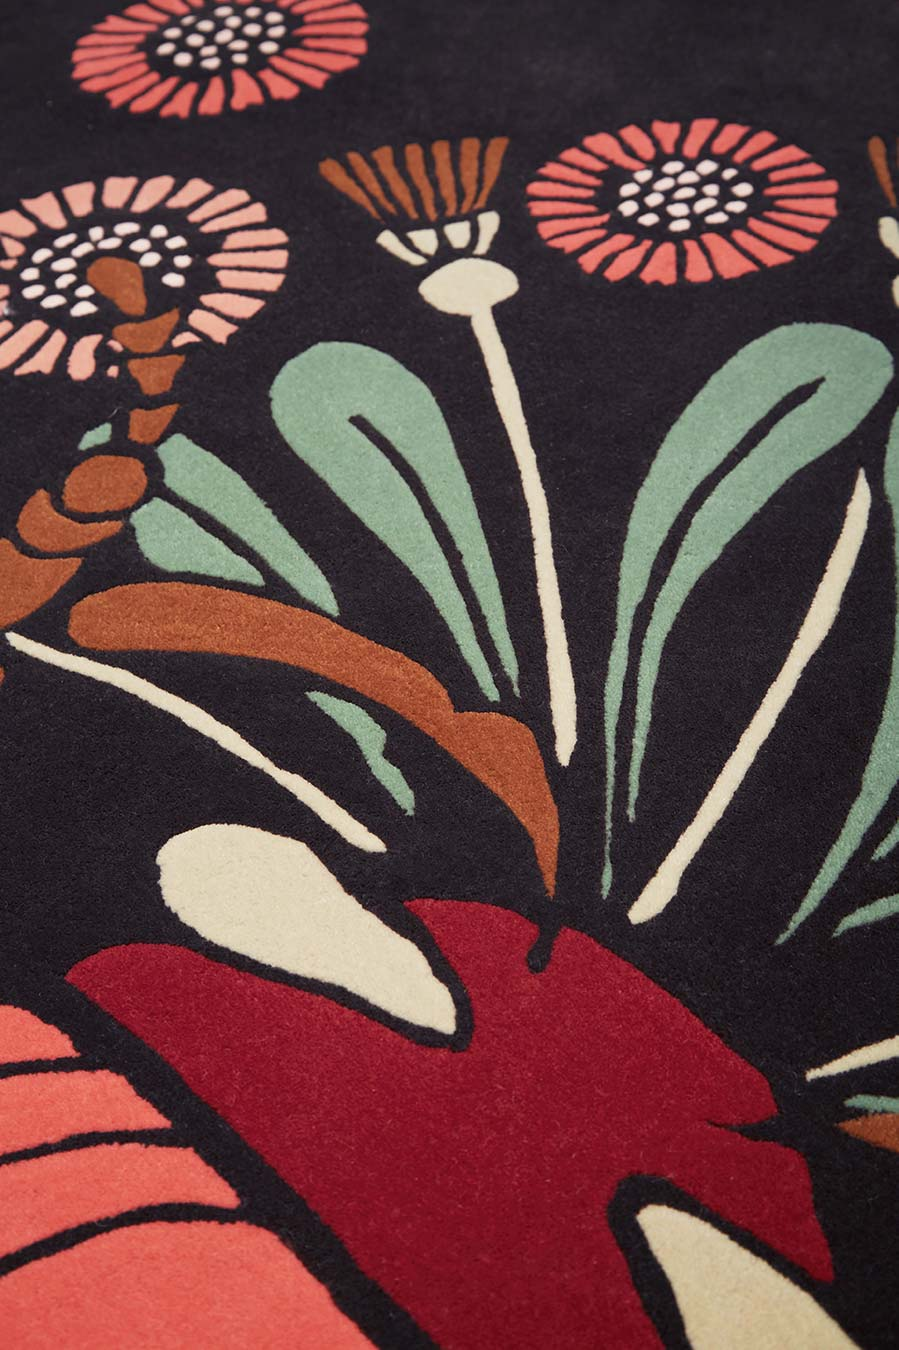 Close up image of floral The Bees Knees rug by House of Heras